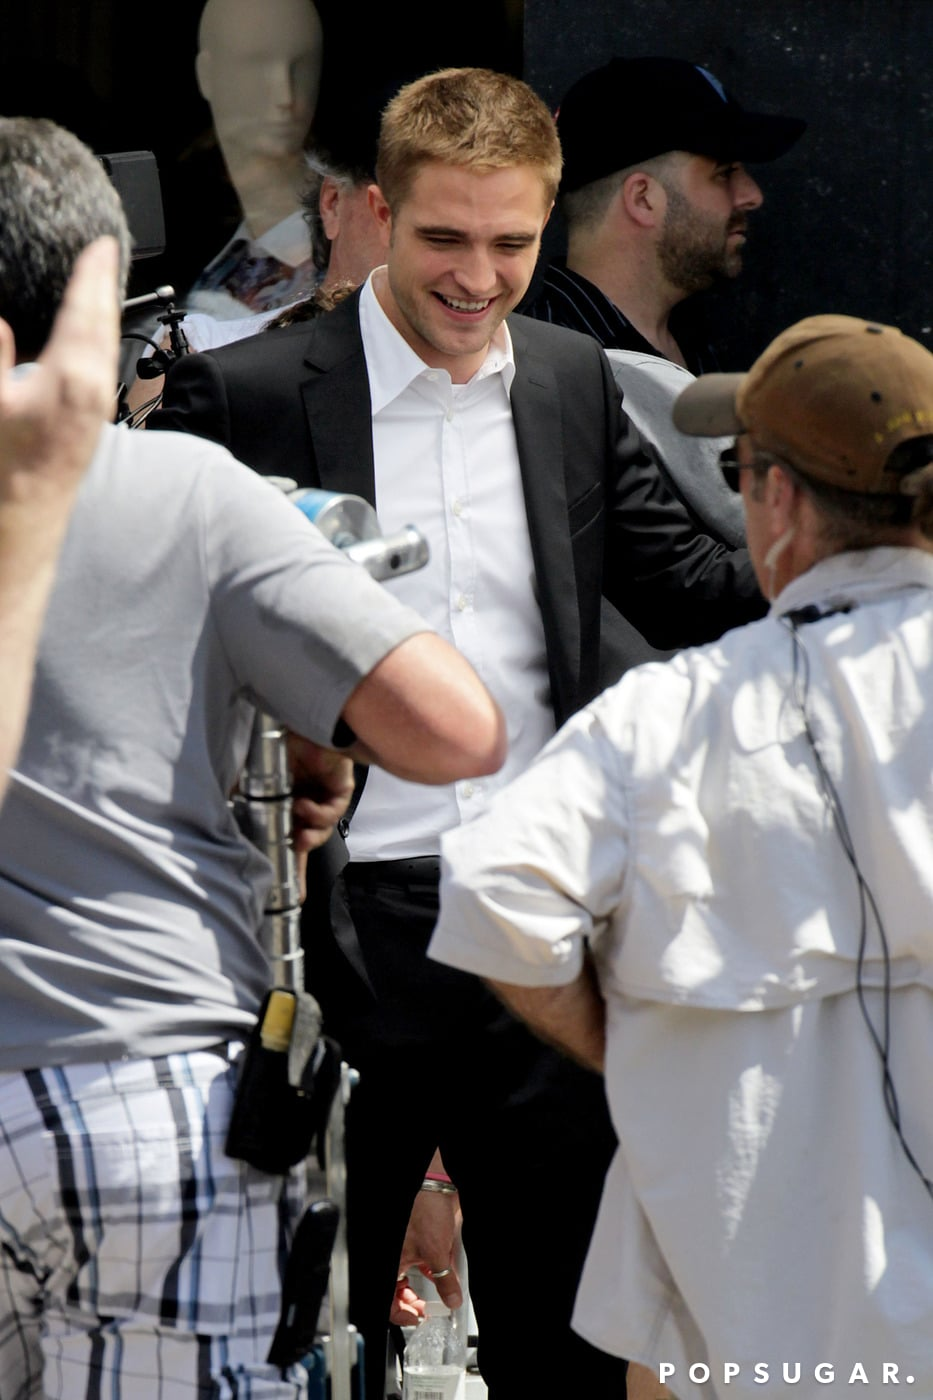 Robert Pattinson wore a suit to film scenes on Rodeo Drive.